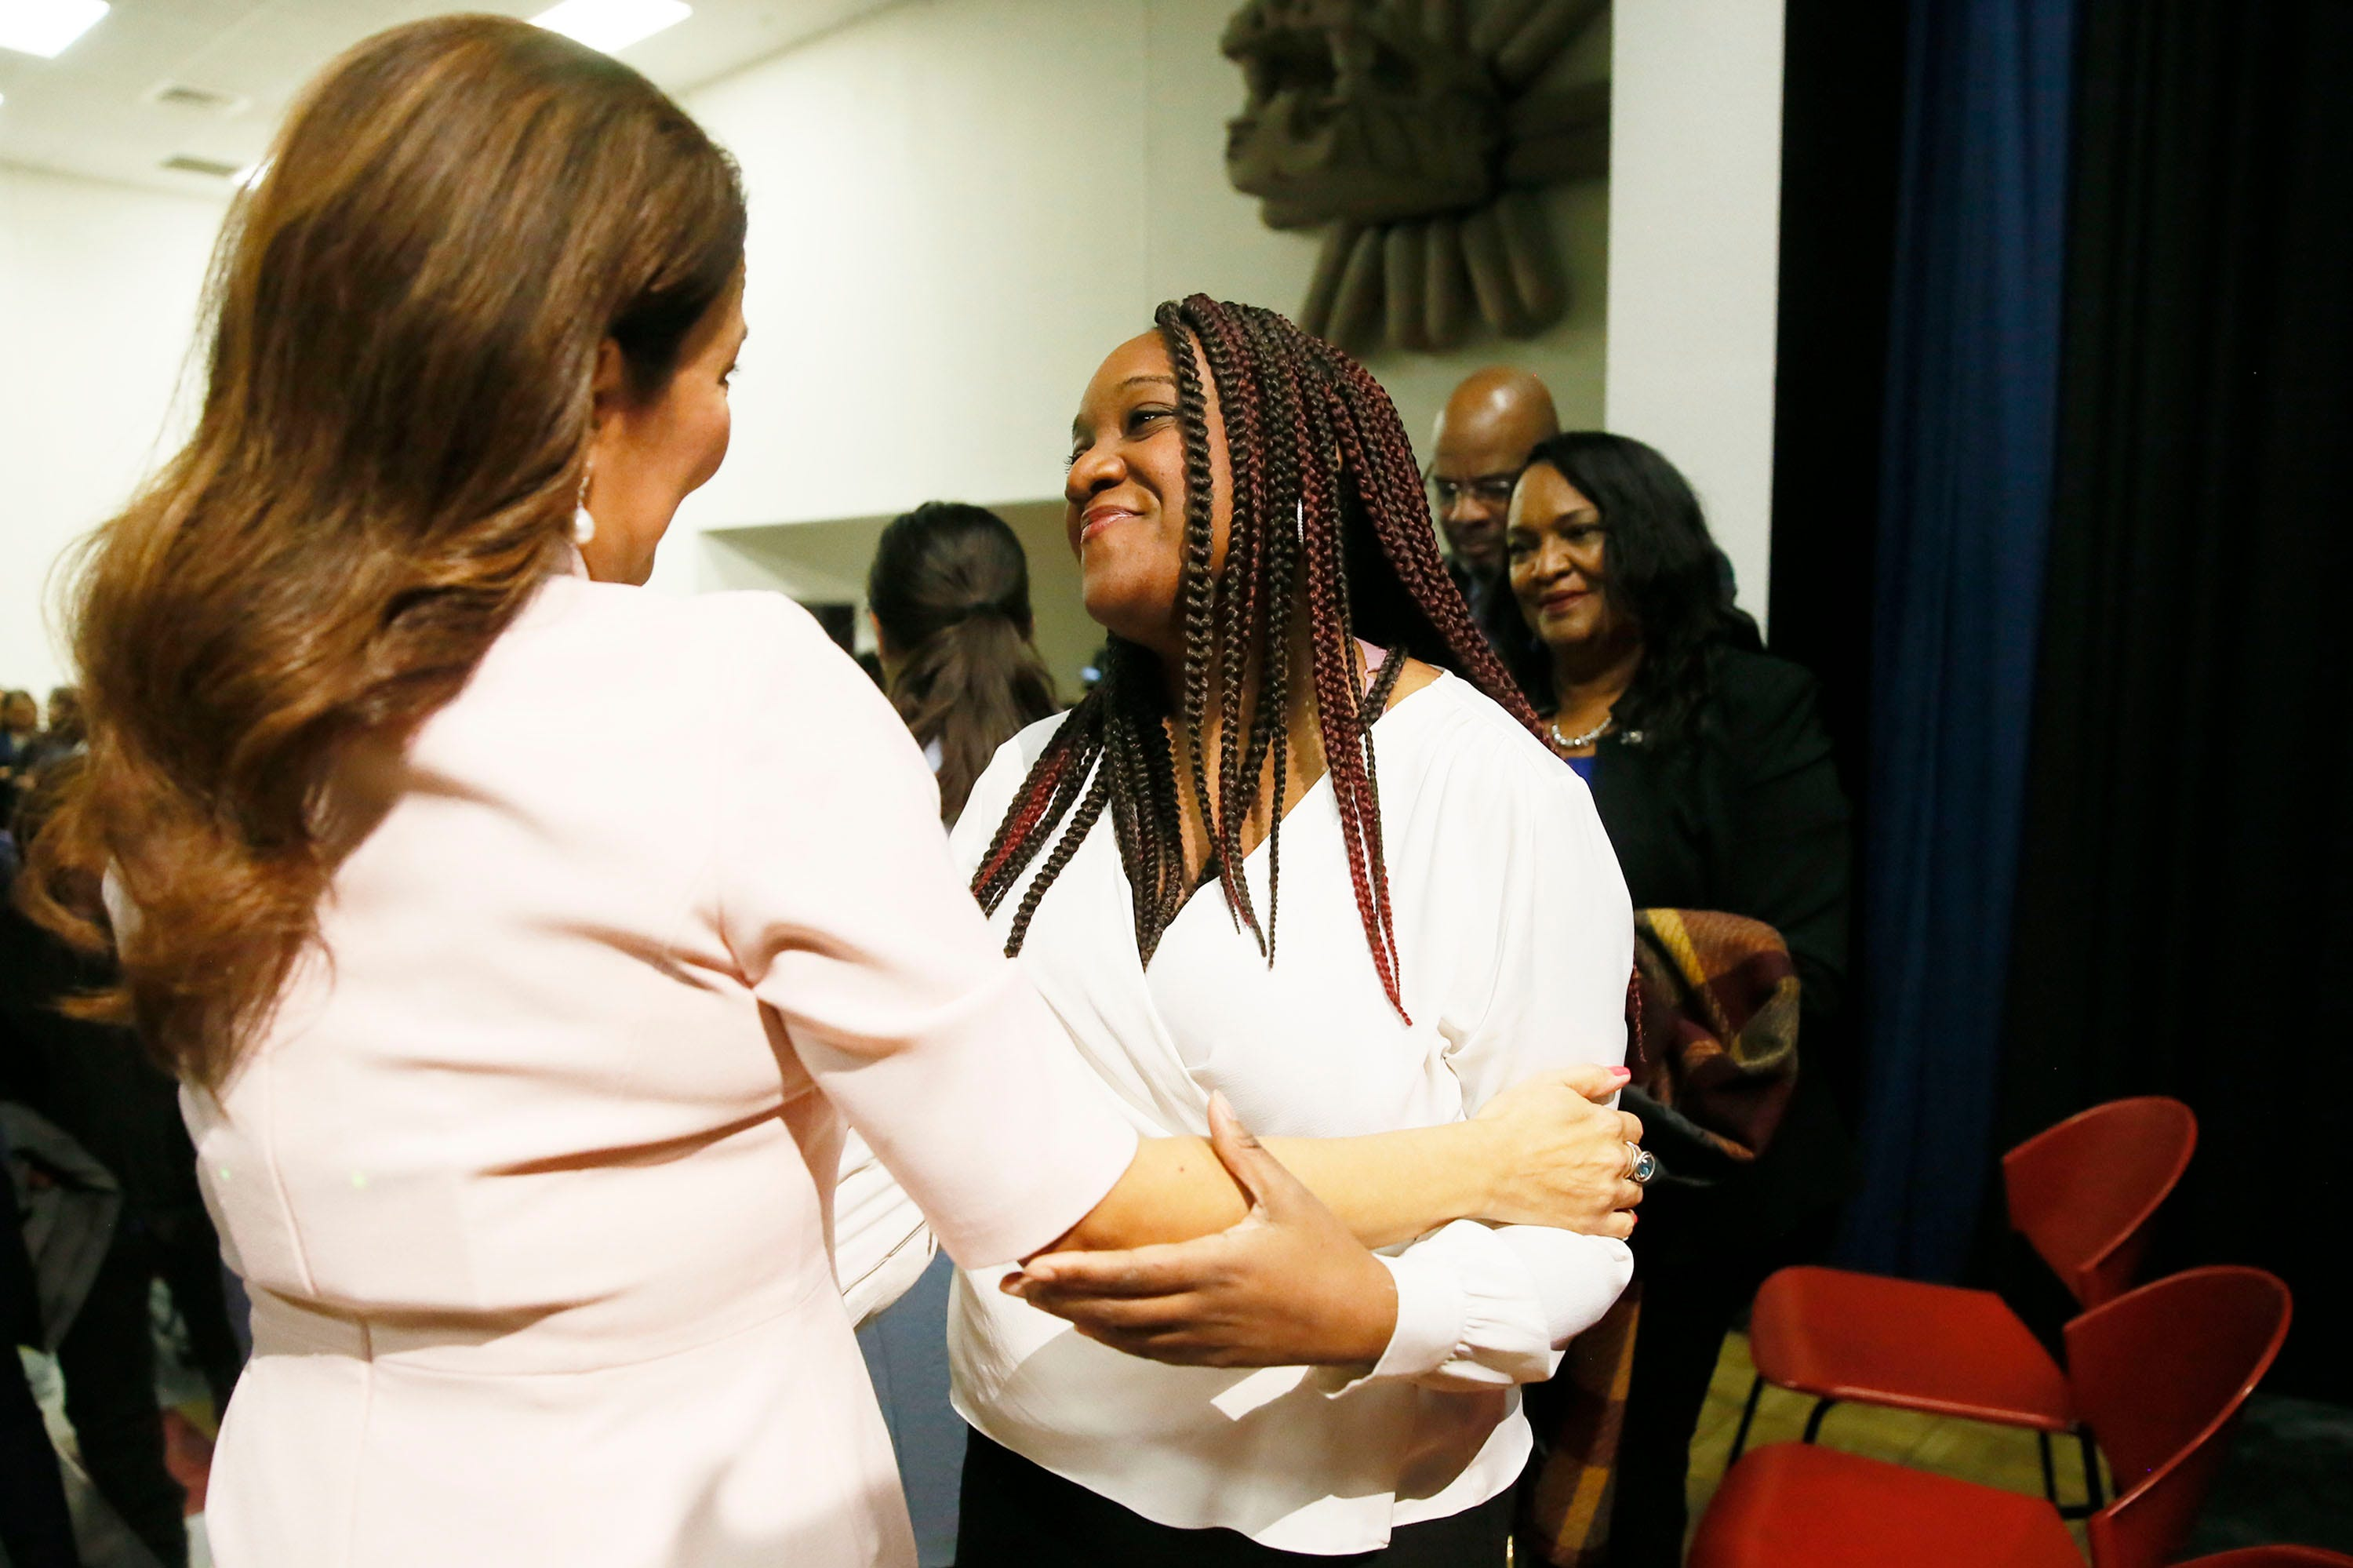 U.S. Rep. Veronica Escobar hugs Michelle Grady, Walmart shooting survivor, after delivers a response in Spanish to President Trump's State of the Union Address Tuesday, Feb. 4, at Centro de Salud Familiar La Fe in El Paso. Michelle attended the rebuttal with her parents Michael and Jane, also survivors of the shooting.